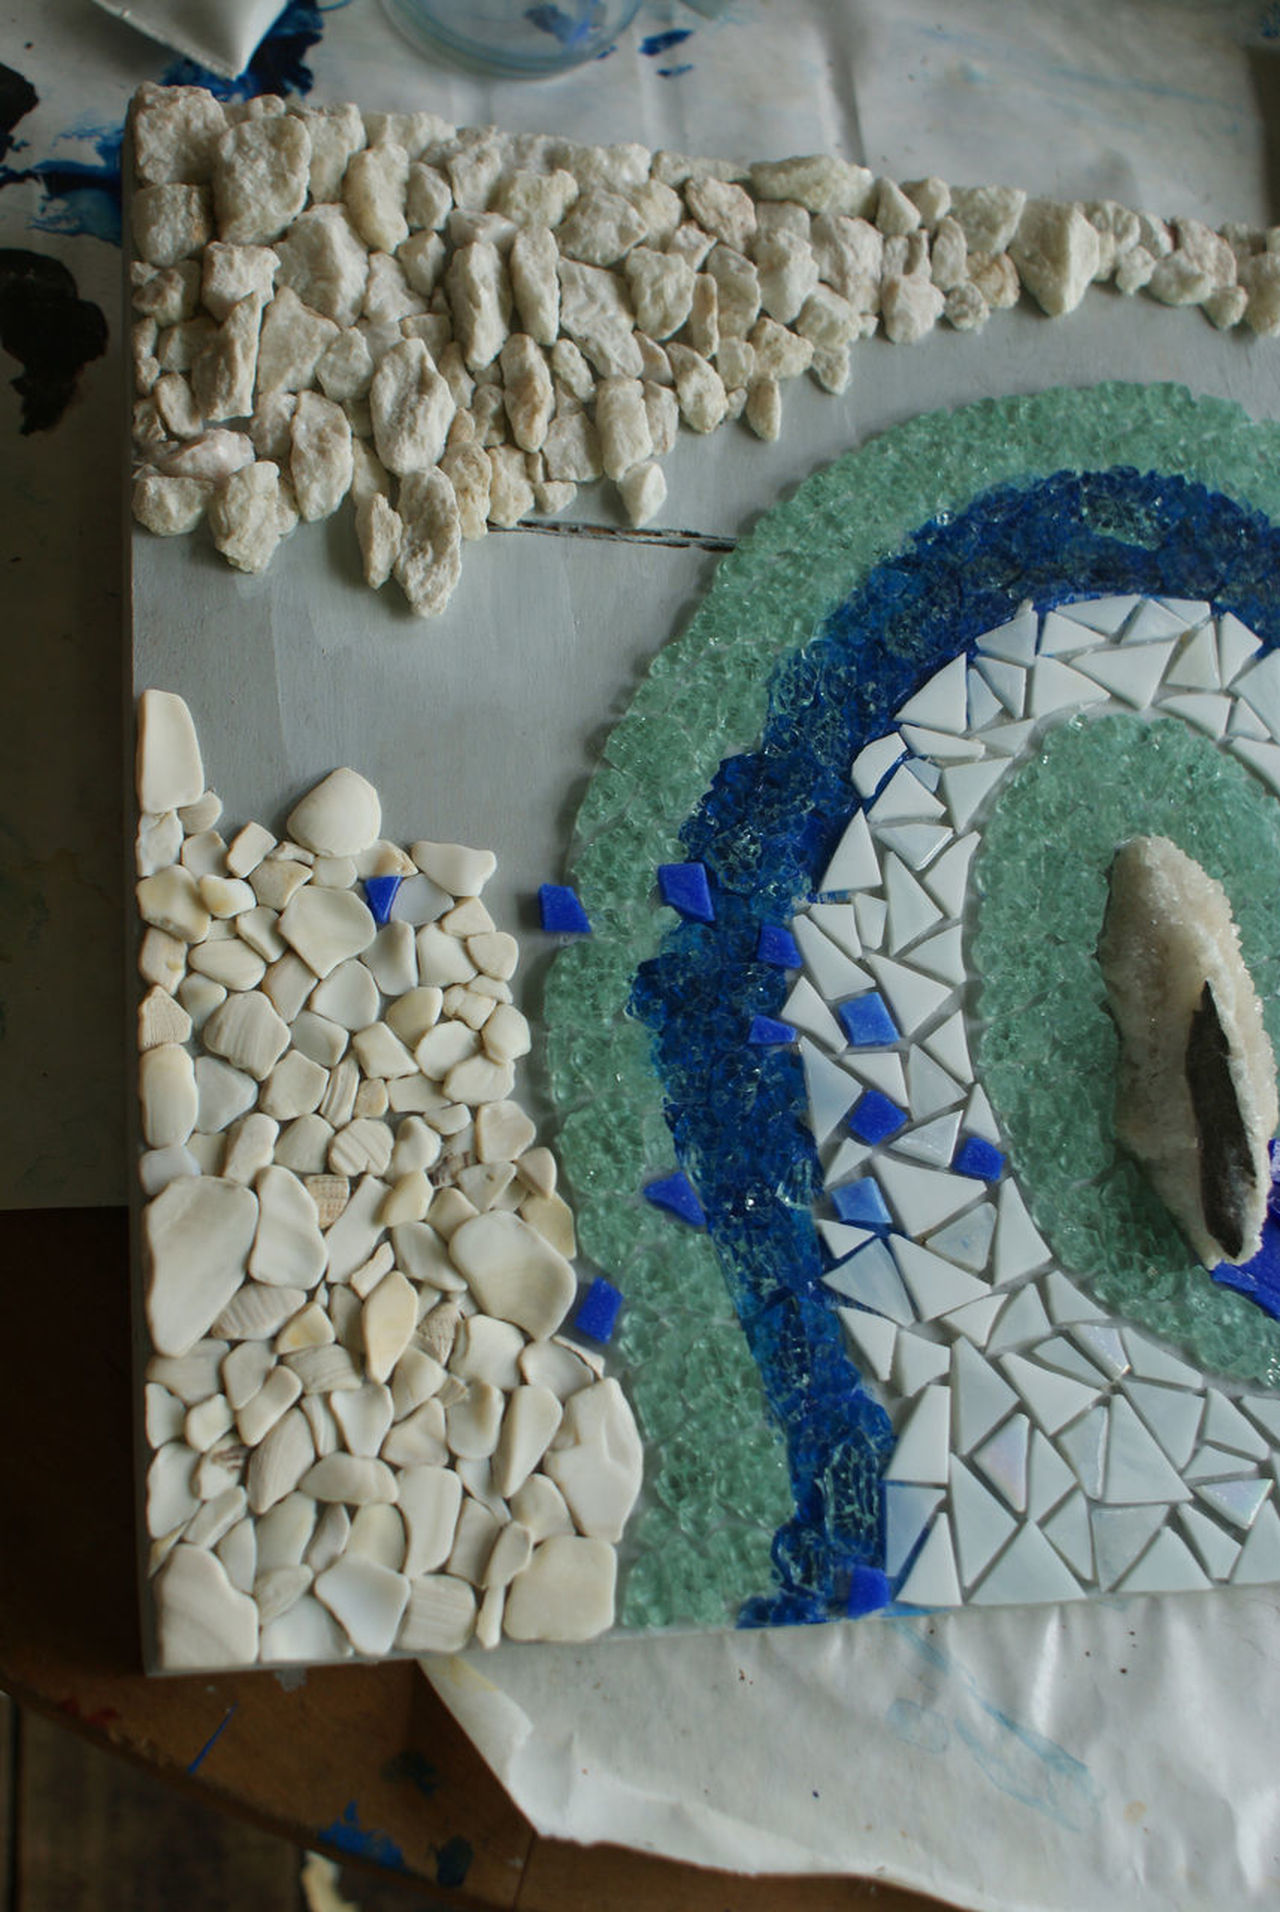 A work of art in progress. Mosaic being made with stones, tiles, glass and granite crystal. Art Beach Art Blue Day Glass - Material Glass Art Indoors  Large Group Of Objects Mosaic Mosaic Art My Art No People Shells Stones White Work Space